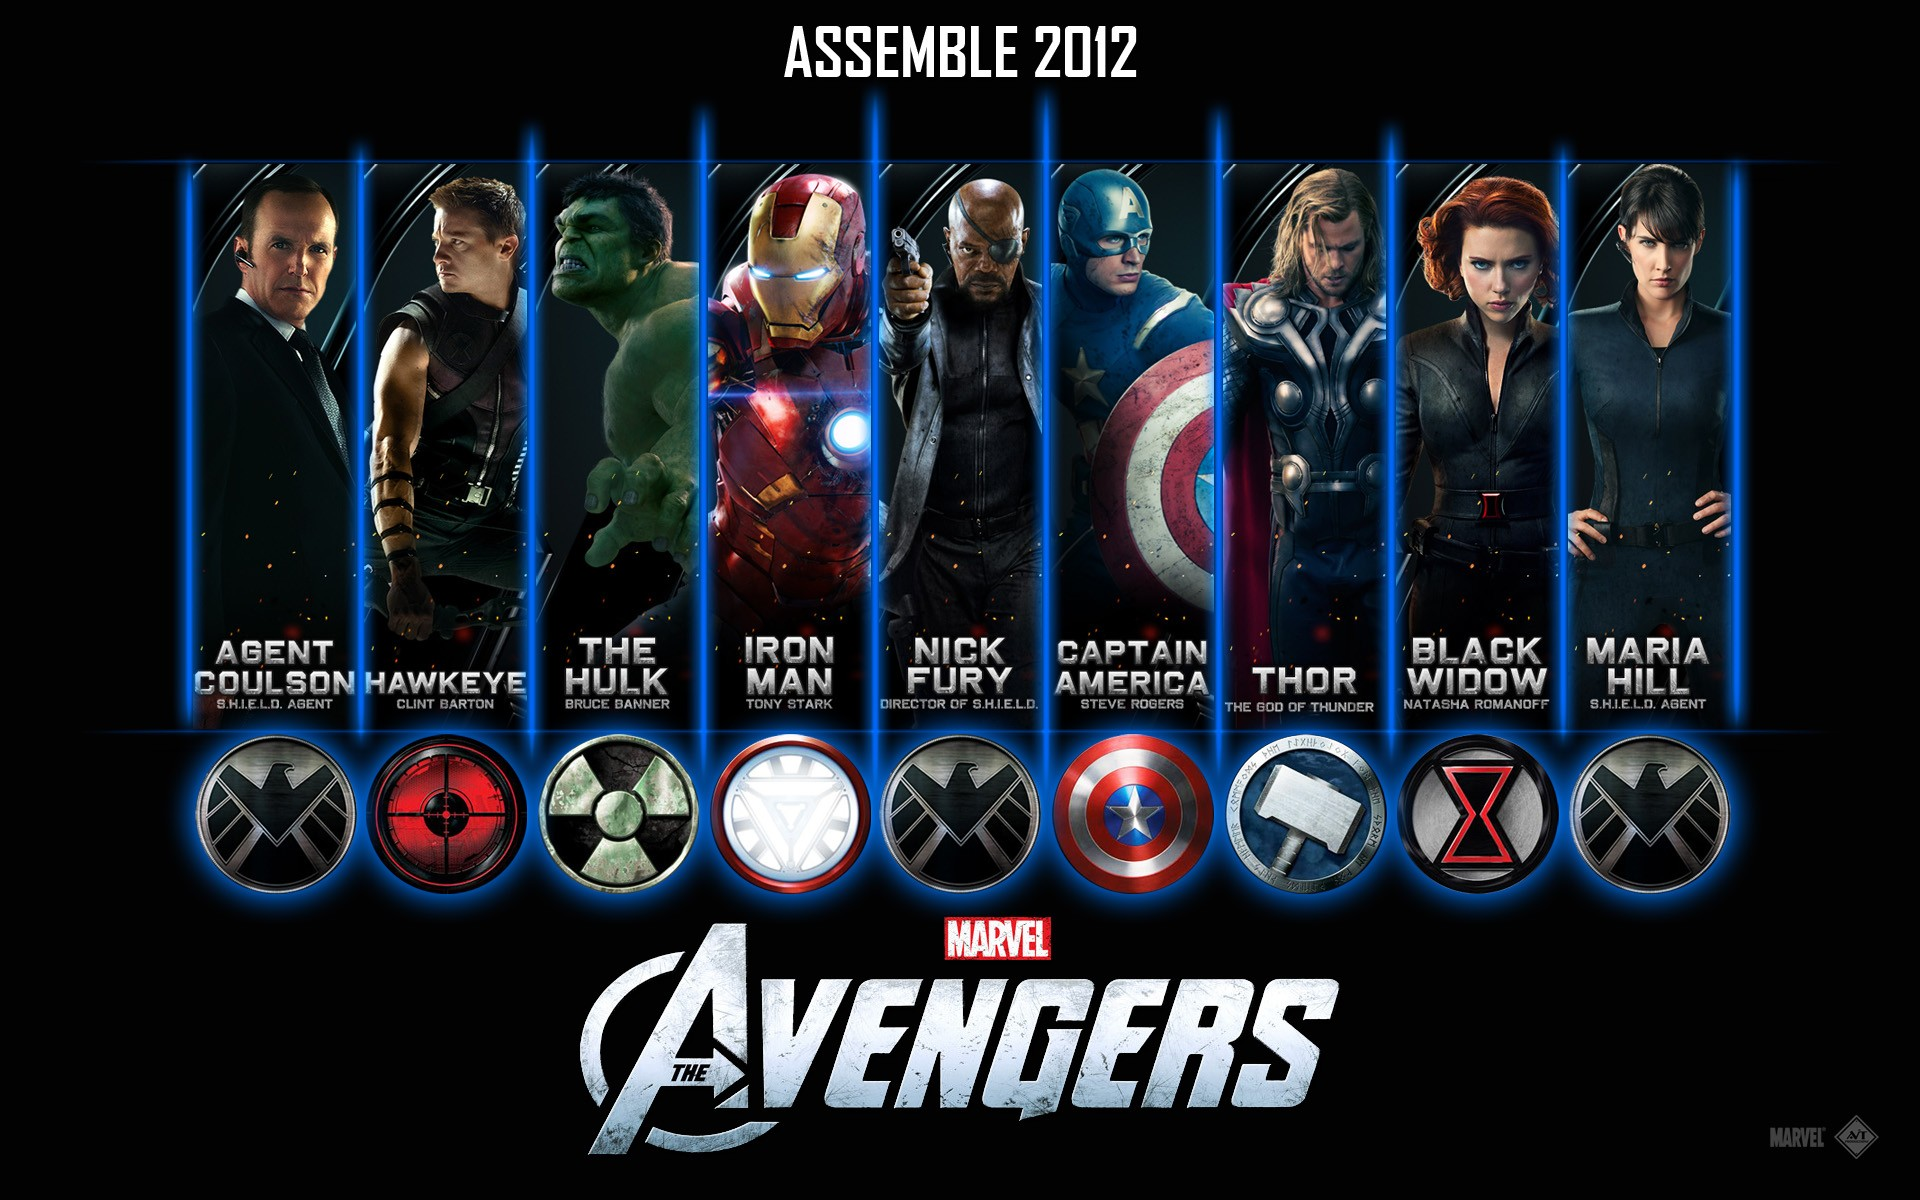 hd wallpapers of avengers 2